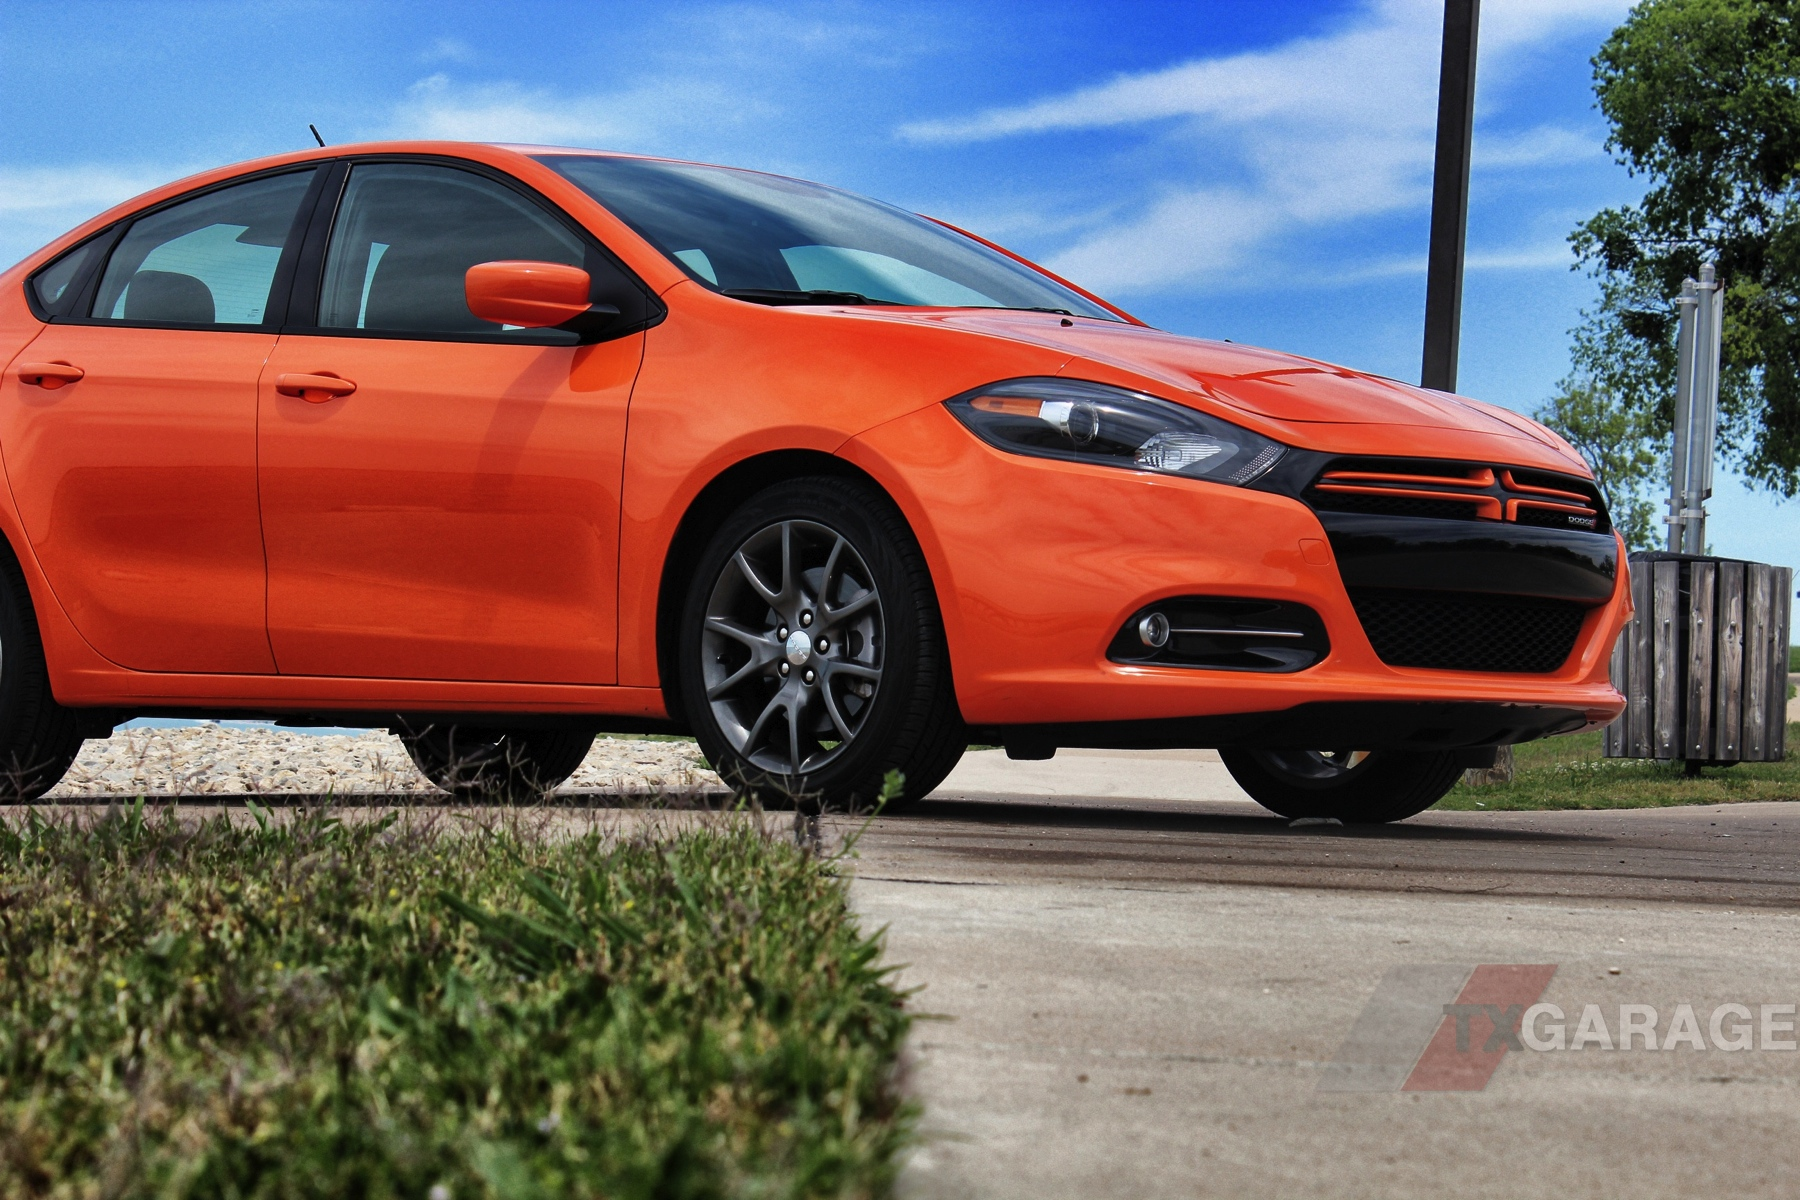 2013 dodge dart rallye 09 txgarage. Cars Review. Best American Auto & Cars Review